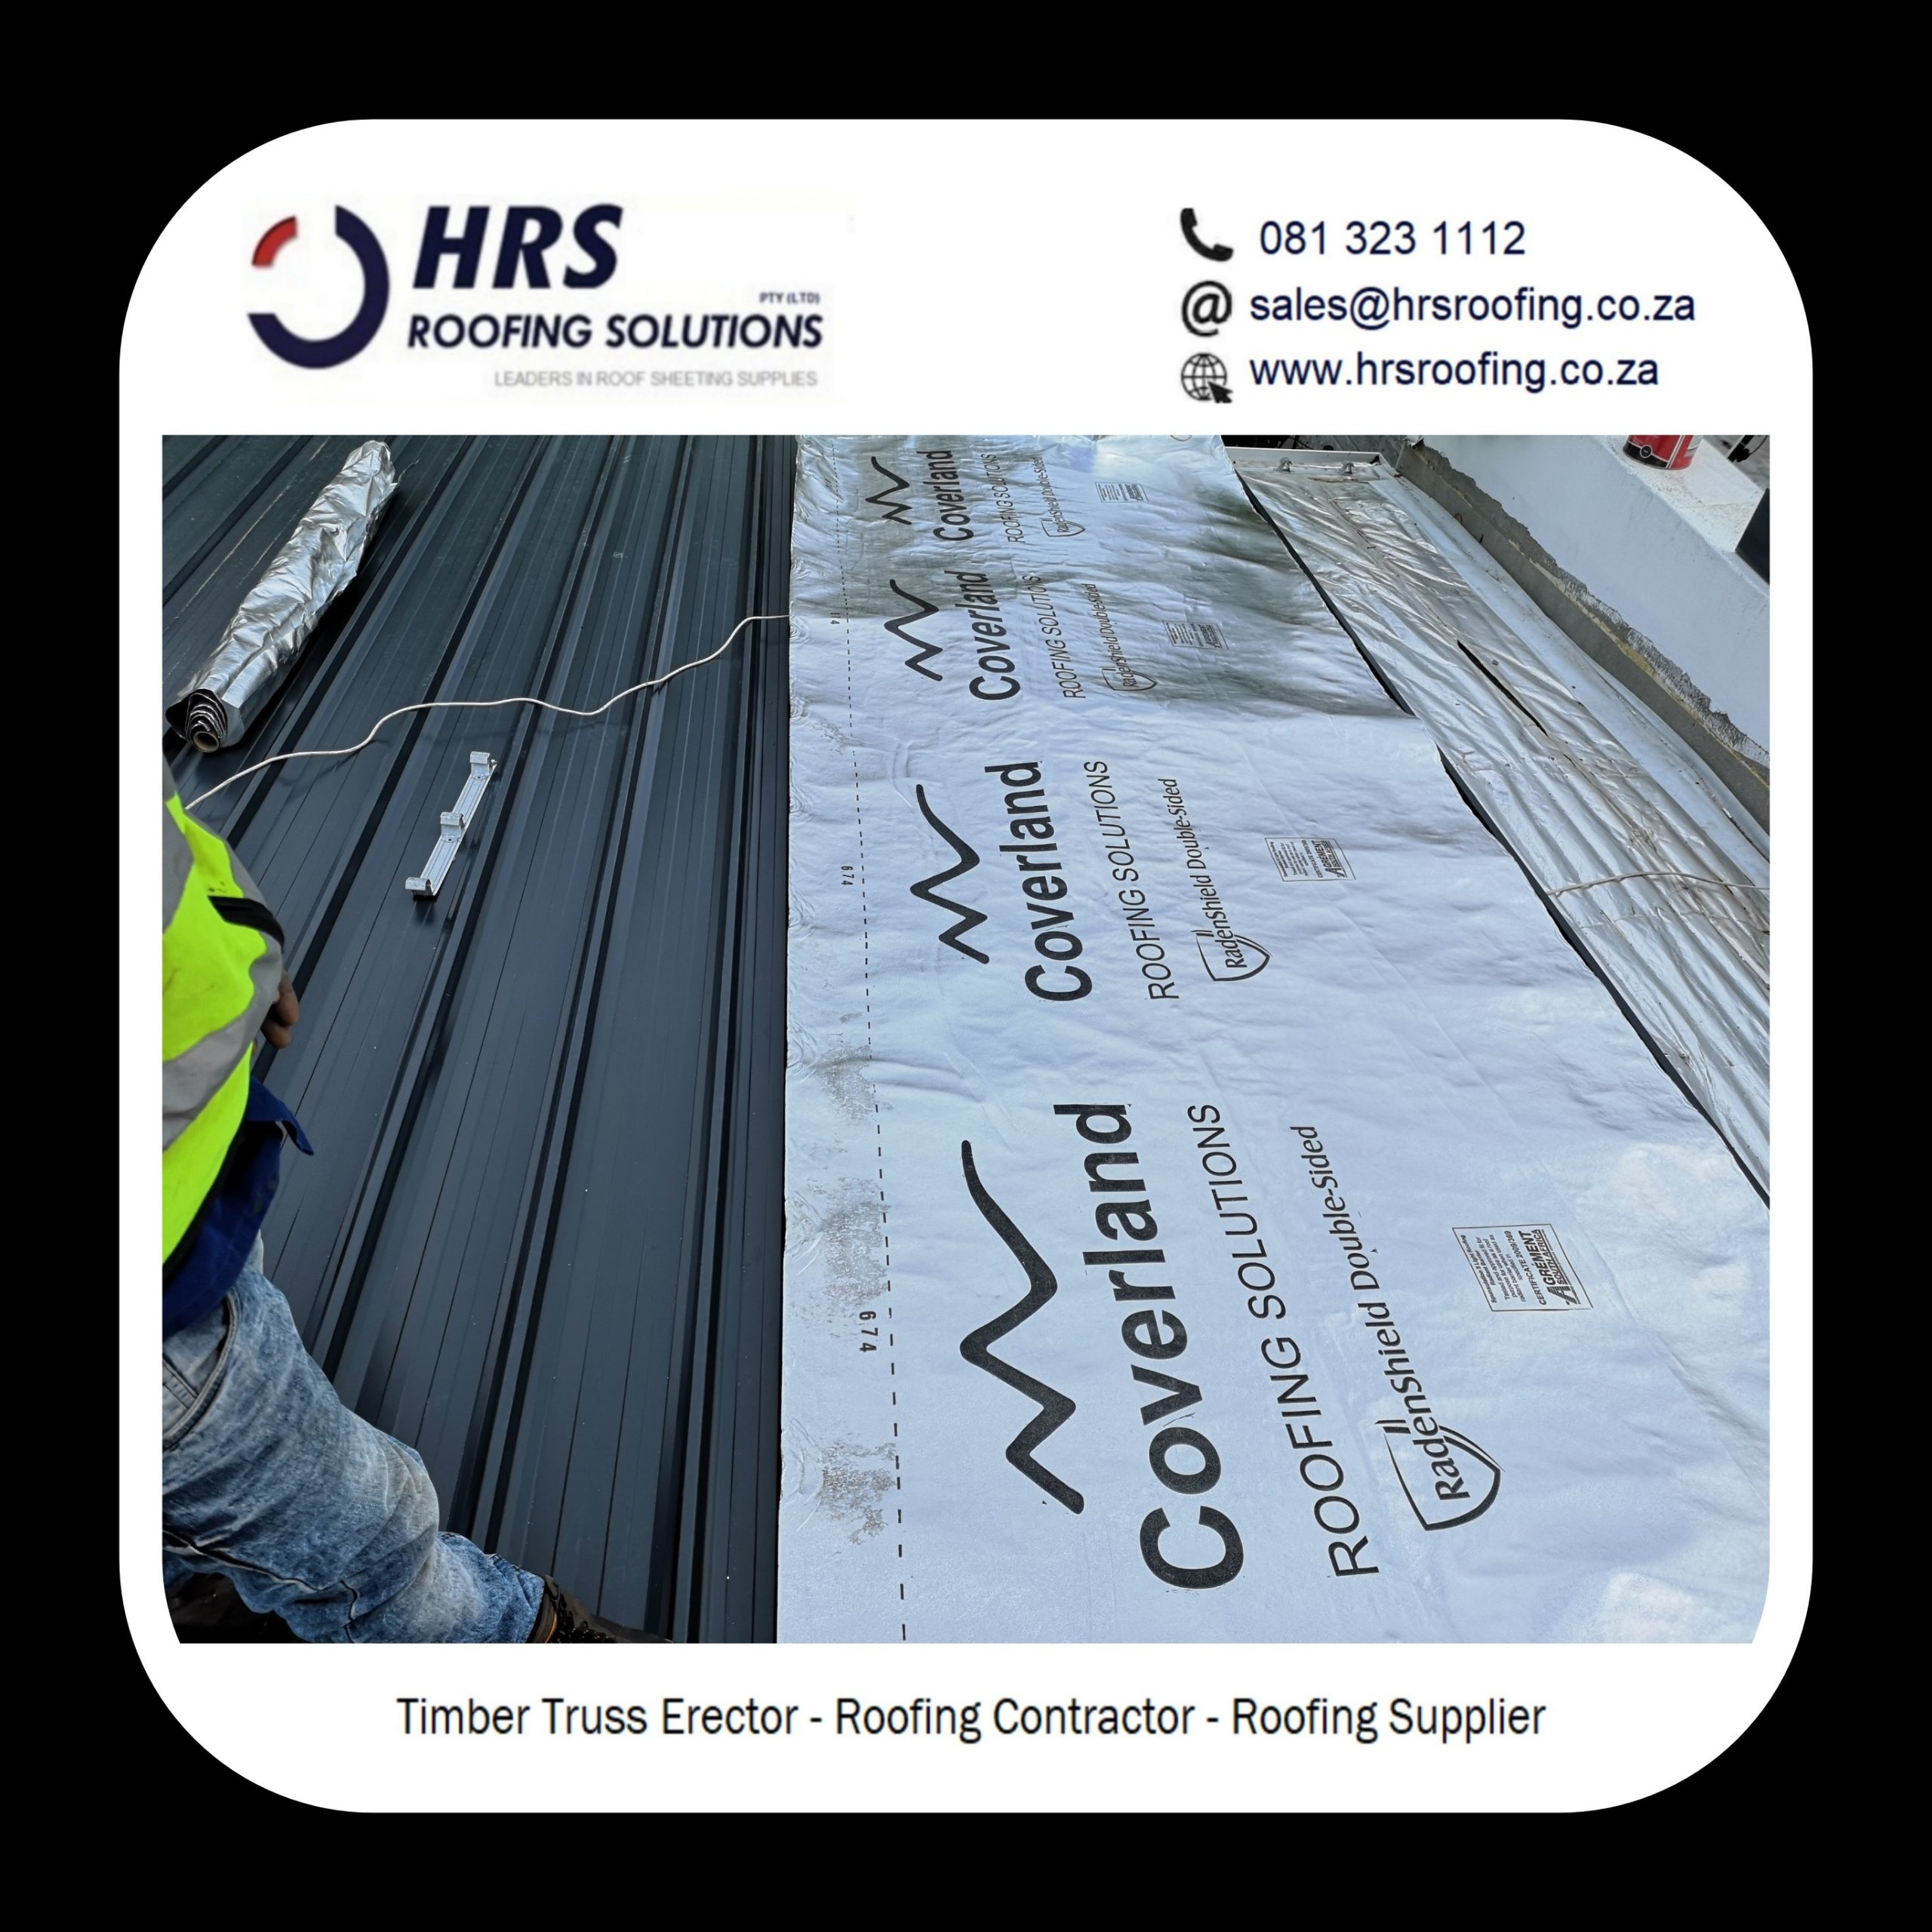 Springlok 700 Colorbond roof sheeting supplier scaled - Roofing Gallery